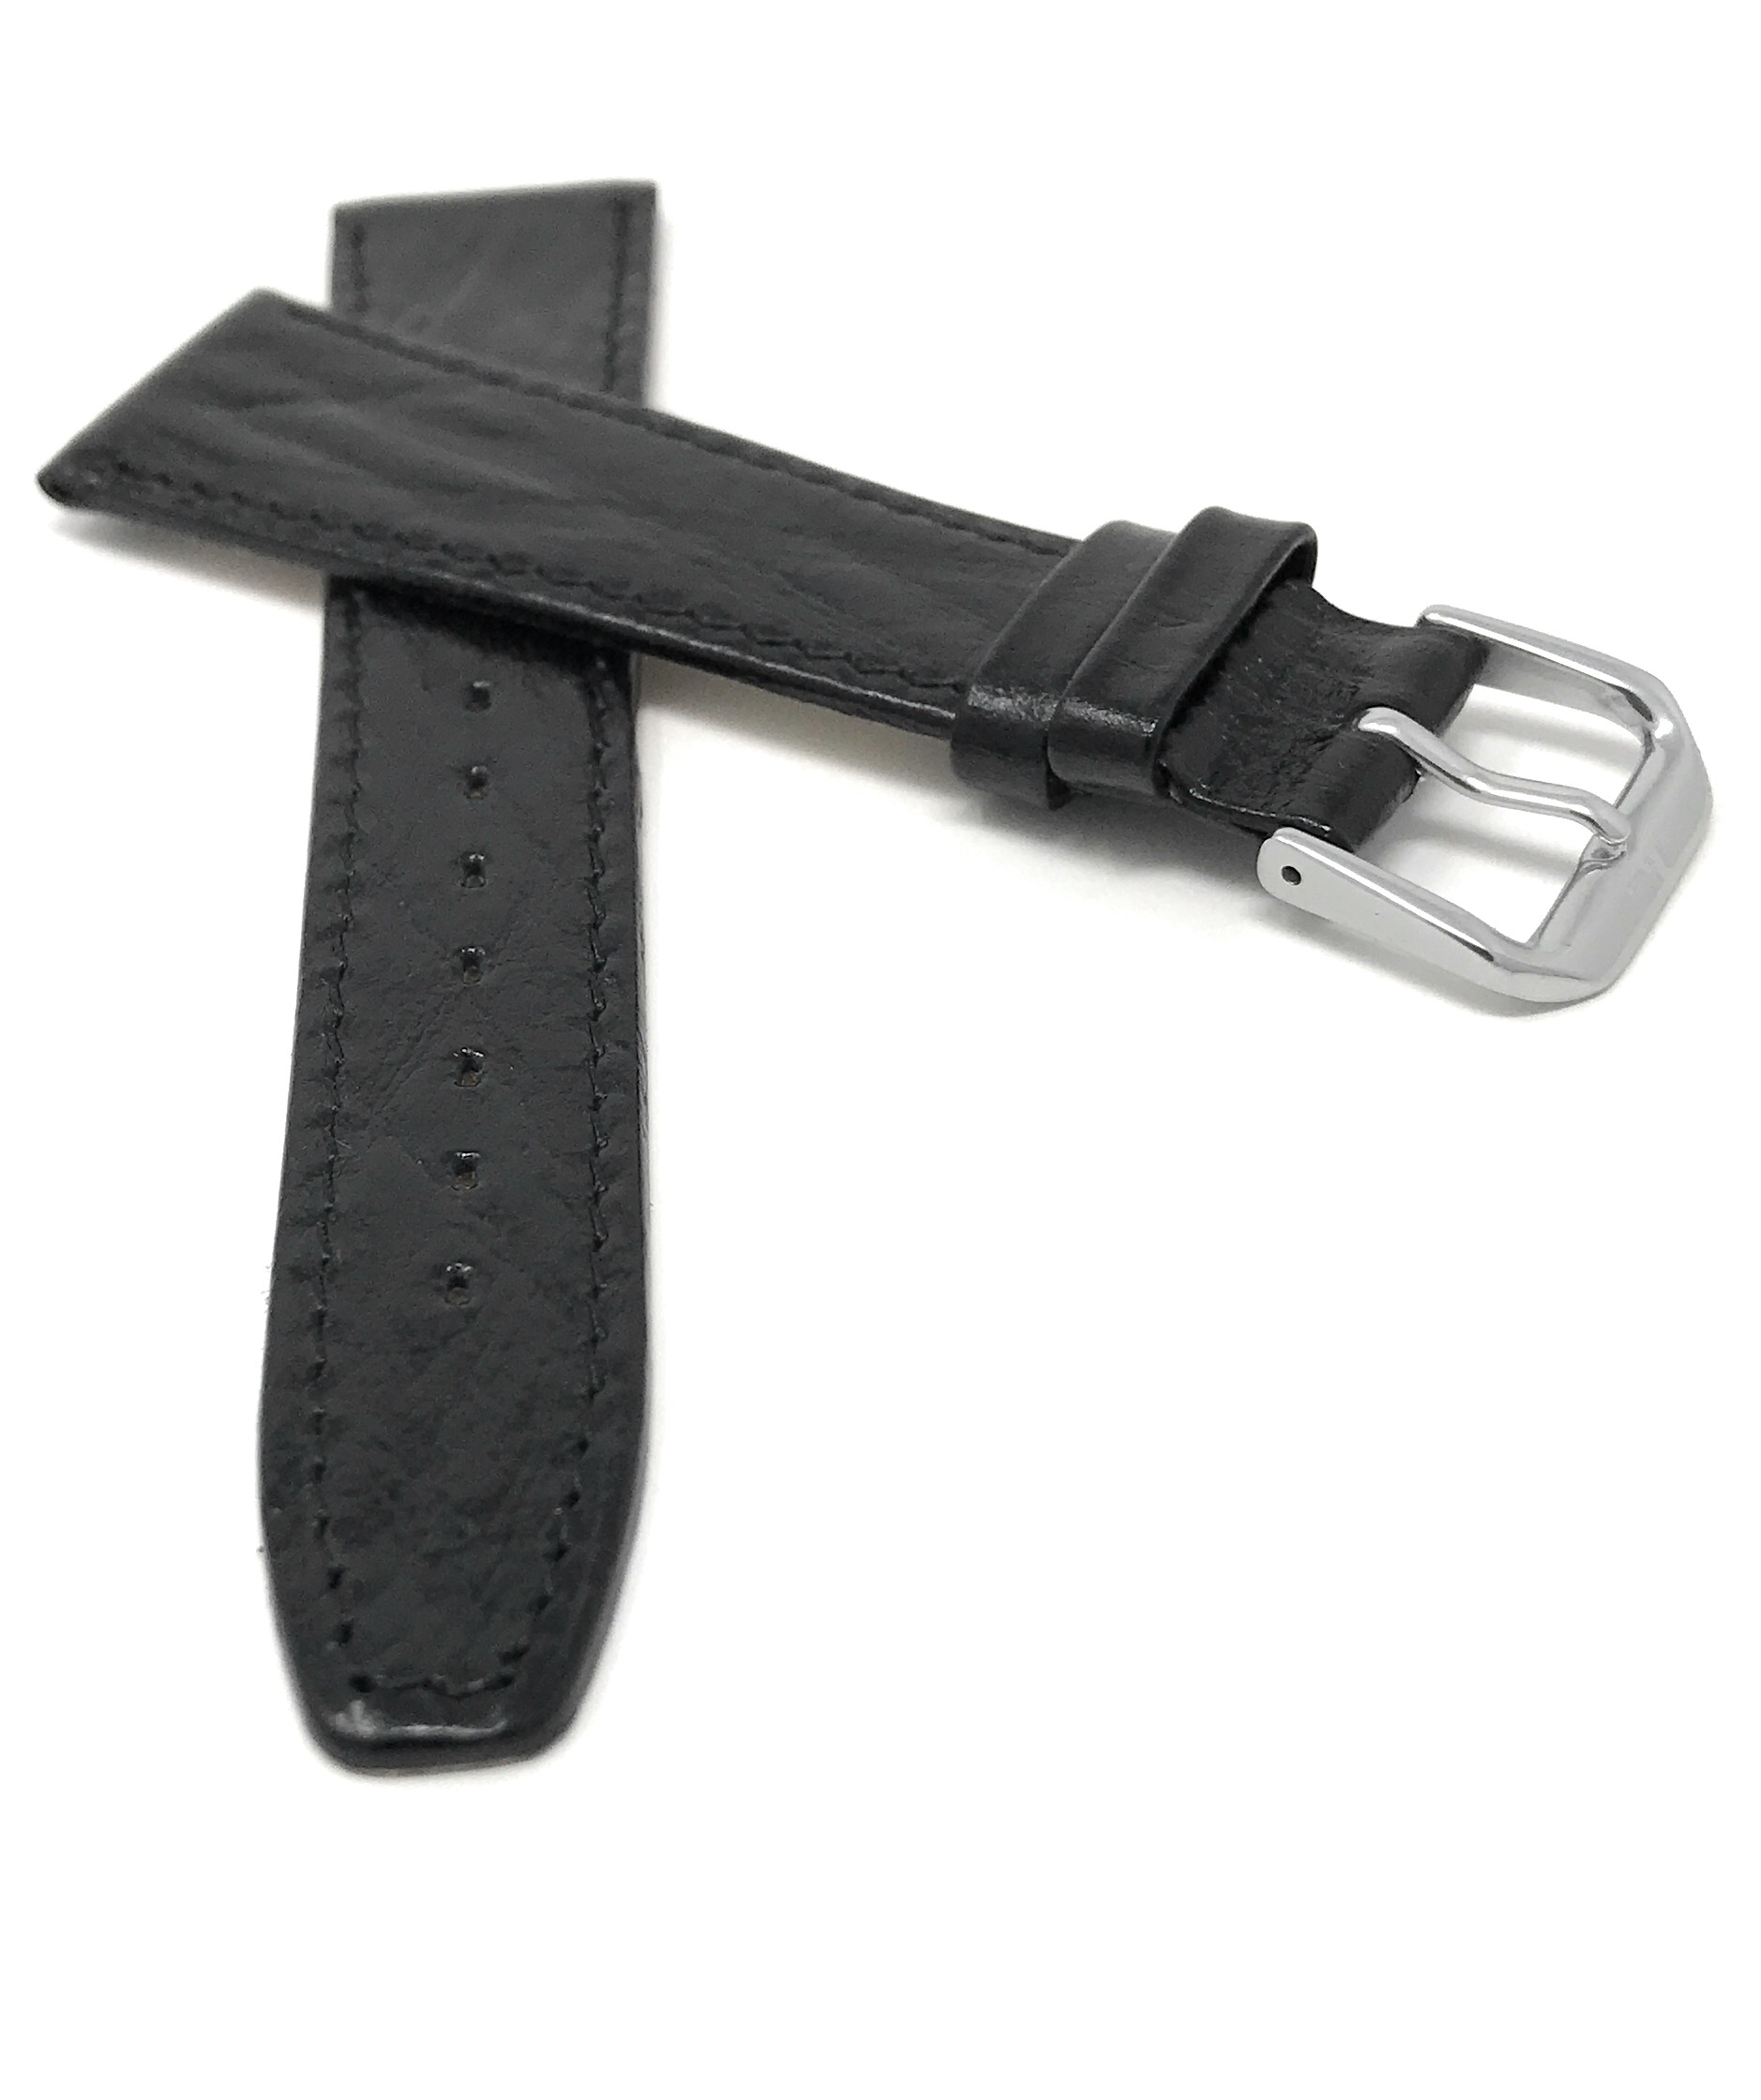 Bandini-Watch-Band-Leather-Strap-Semi-Glossy-10mm-20mm-Extra-Long-Also thumbnail 6